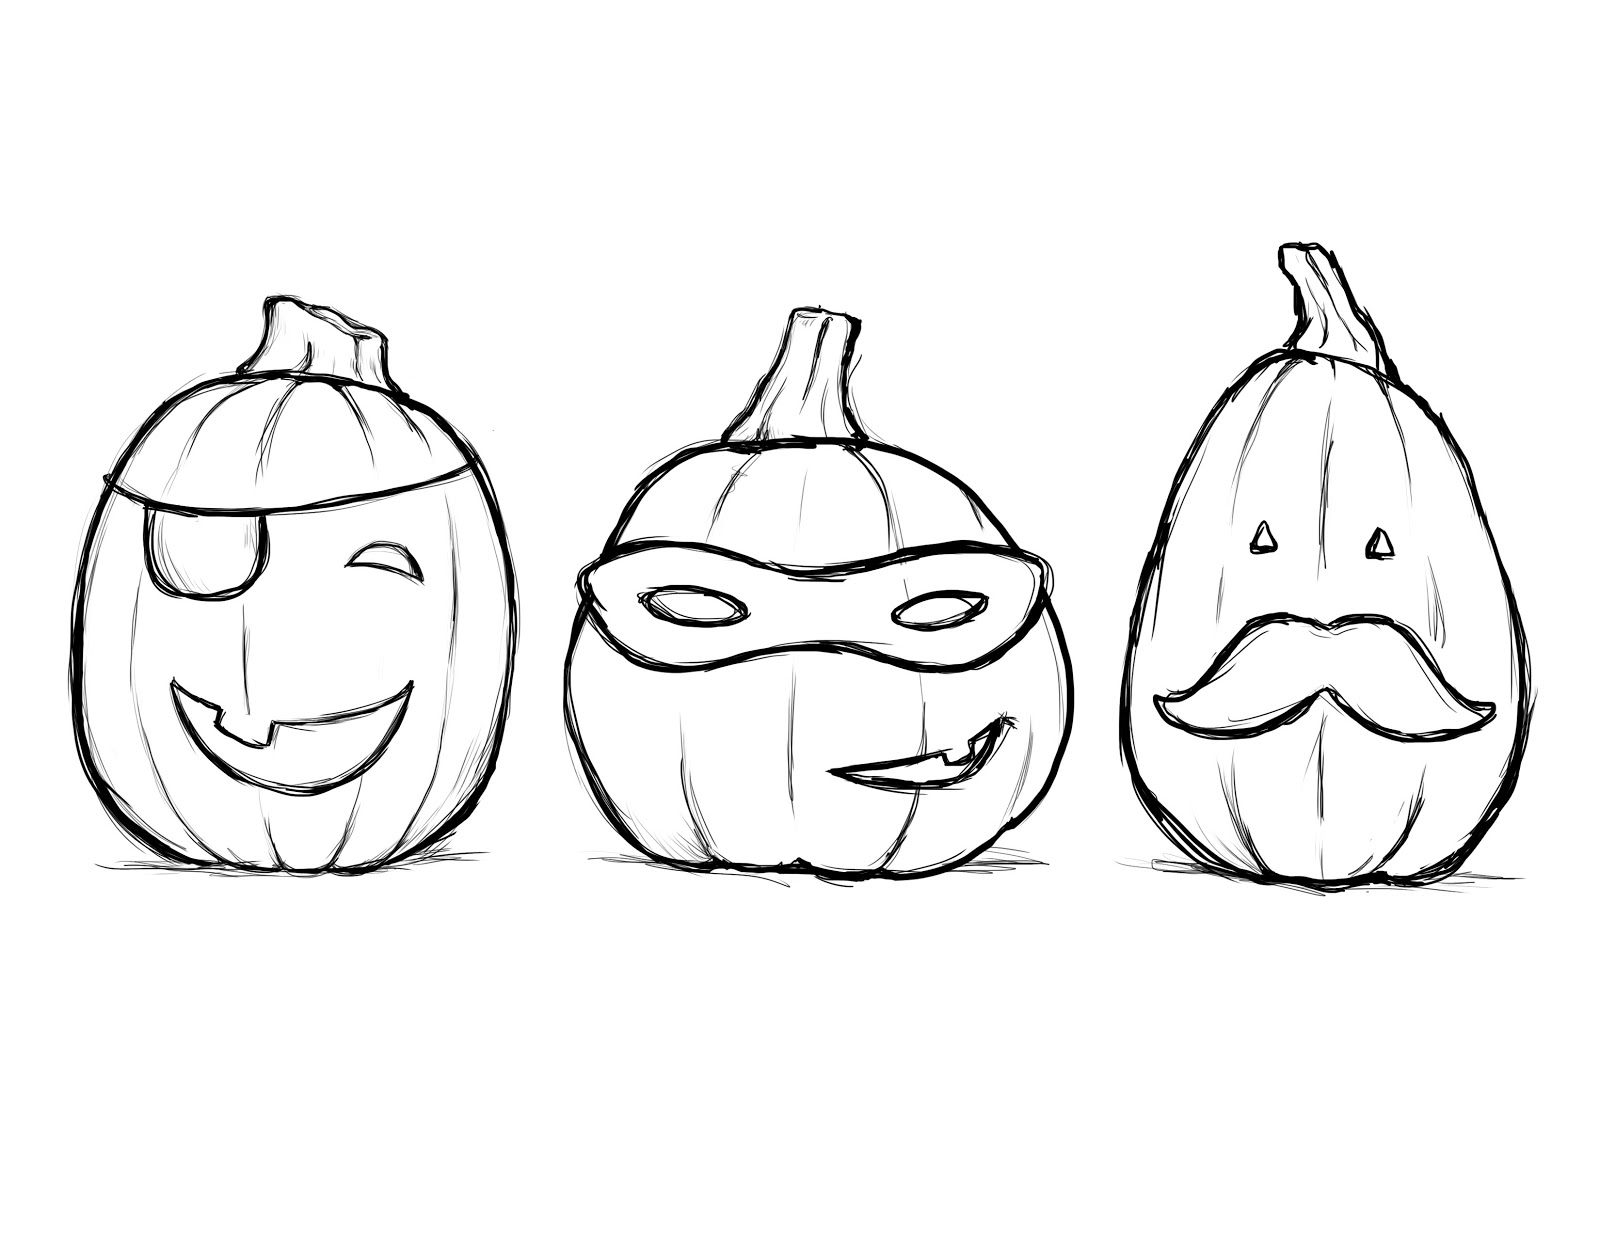 pumpkin colouring free printable pumpkin coloring pages for kids cool2bkids pumpkin colouring 1 1